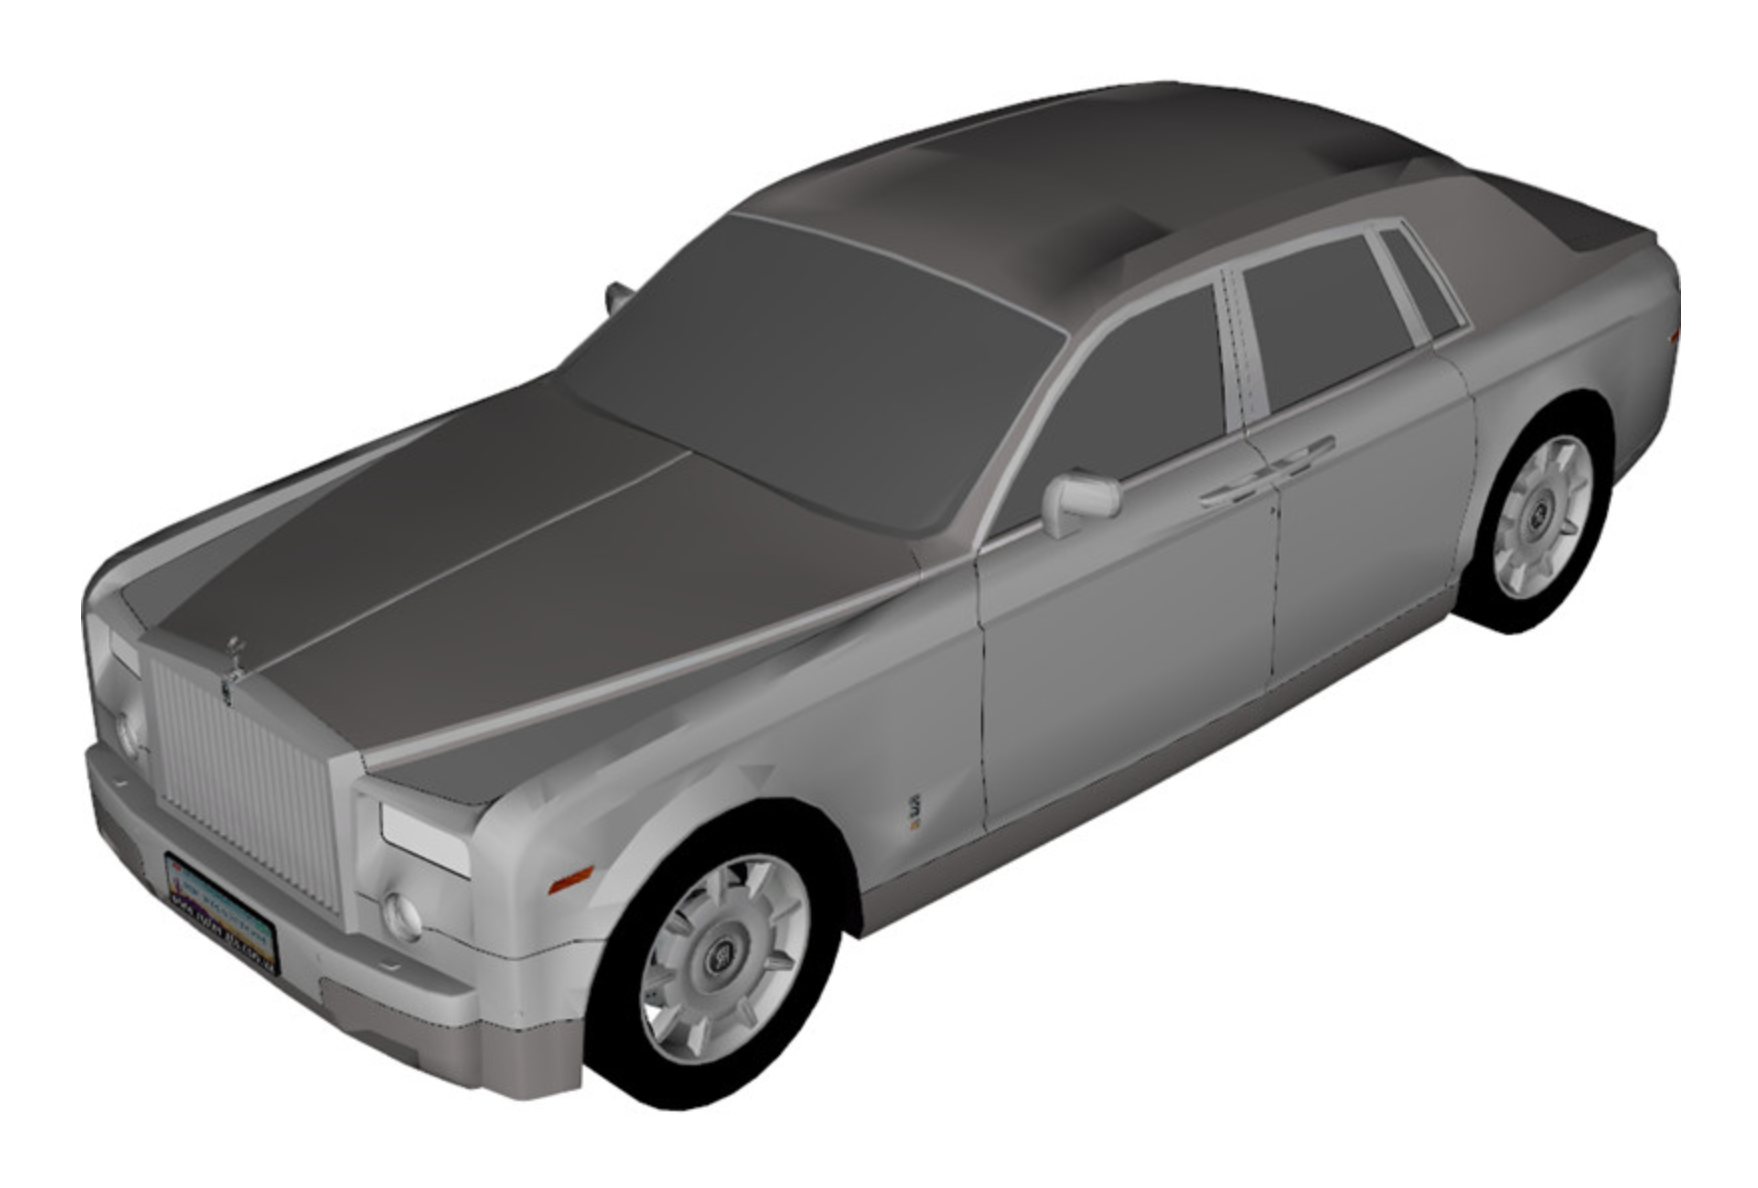 Outdoor bespoke (Teflon coated) waterproof covers for ROLLS ROYCE (Special Order) by Apollo